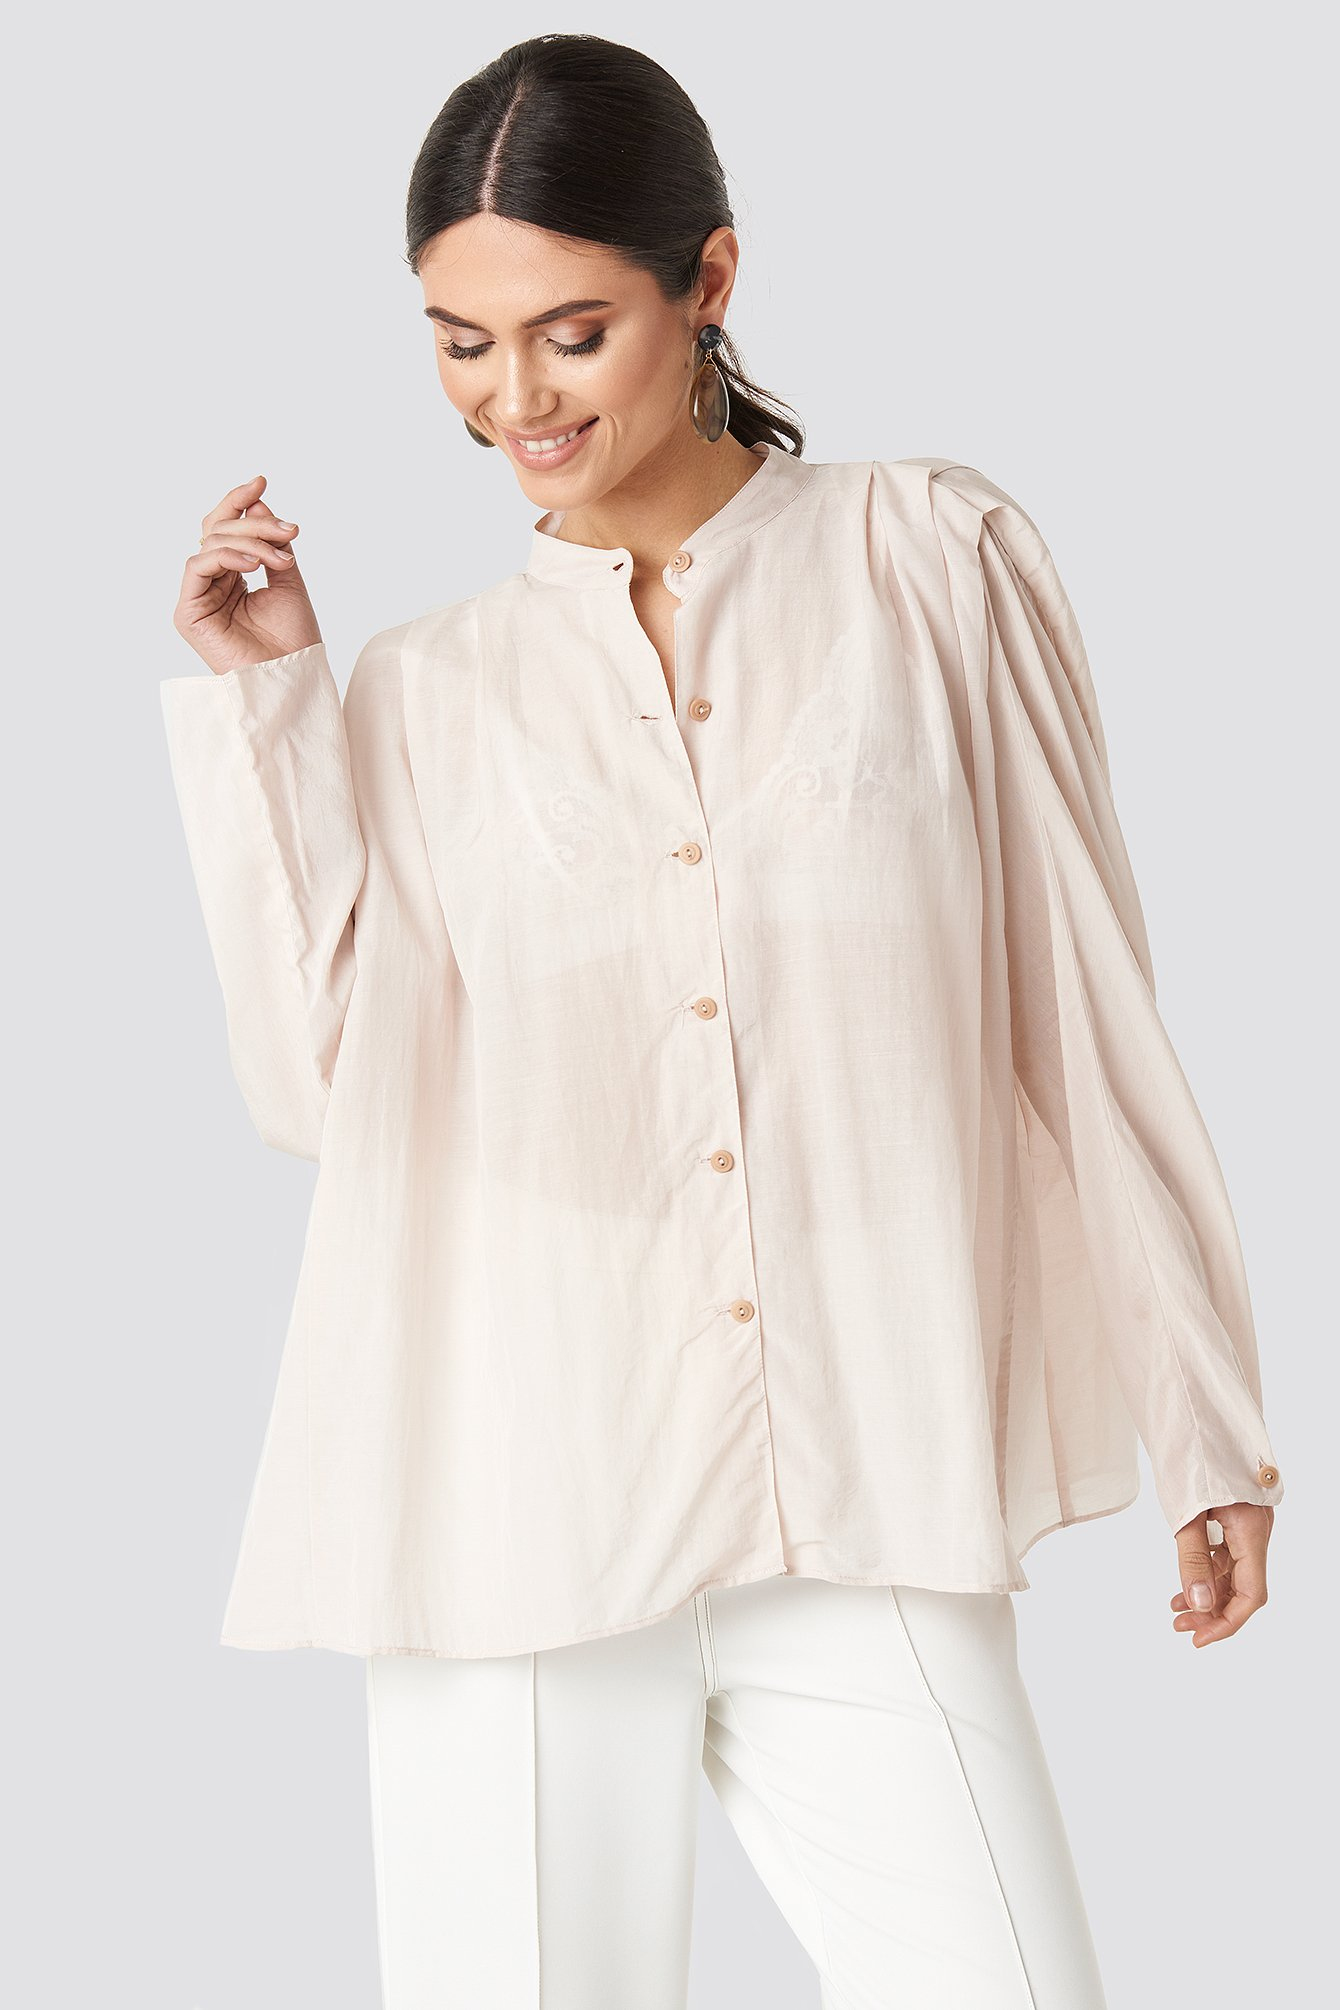 Nude Heracles Blouse